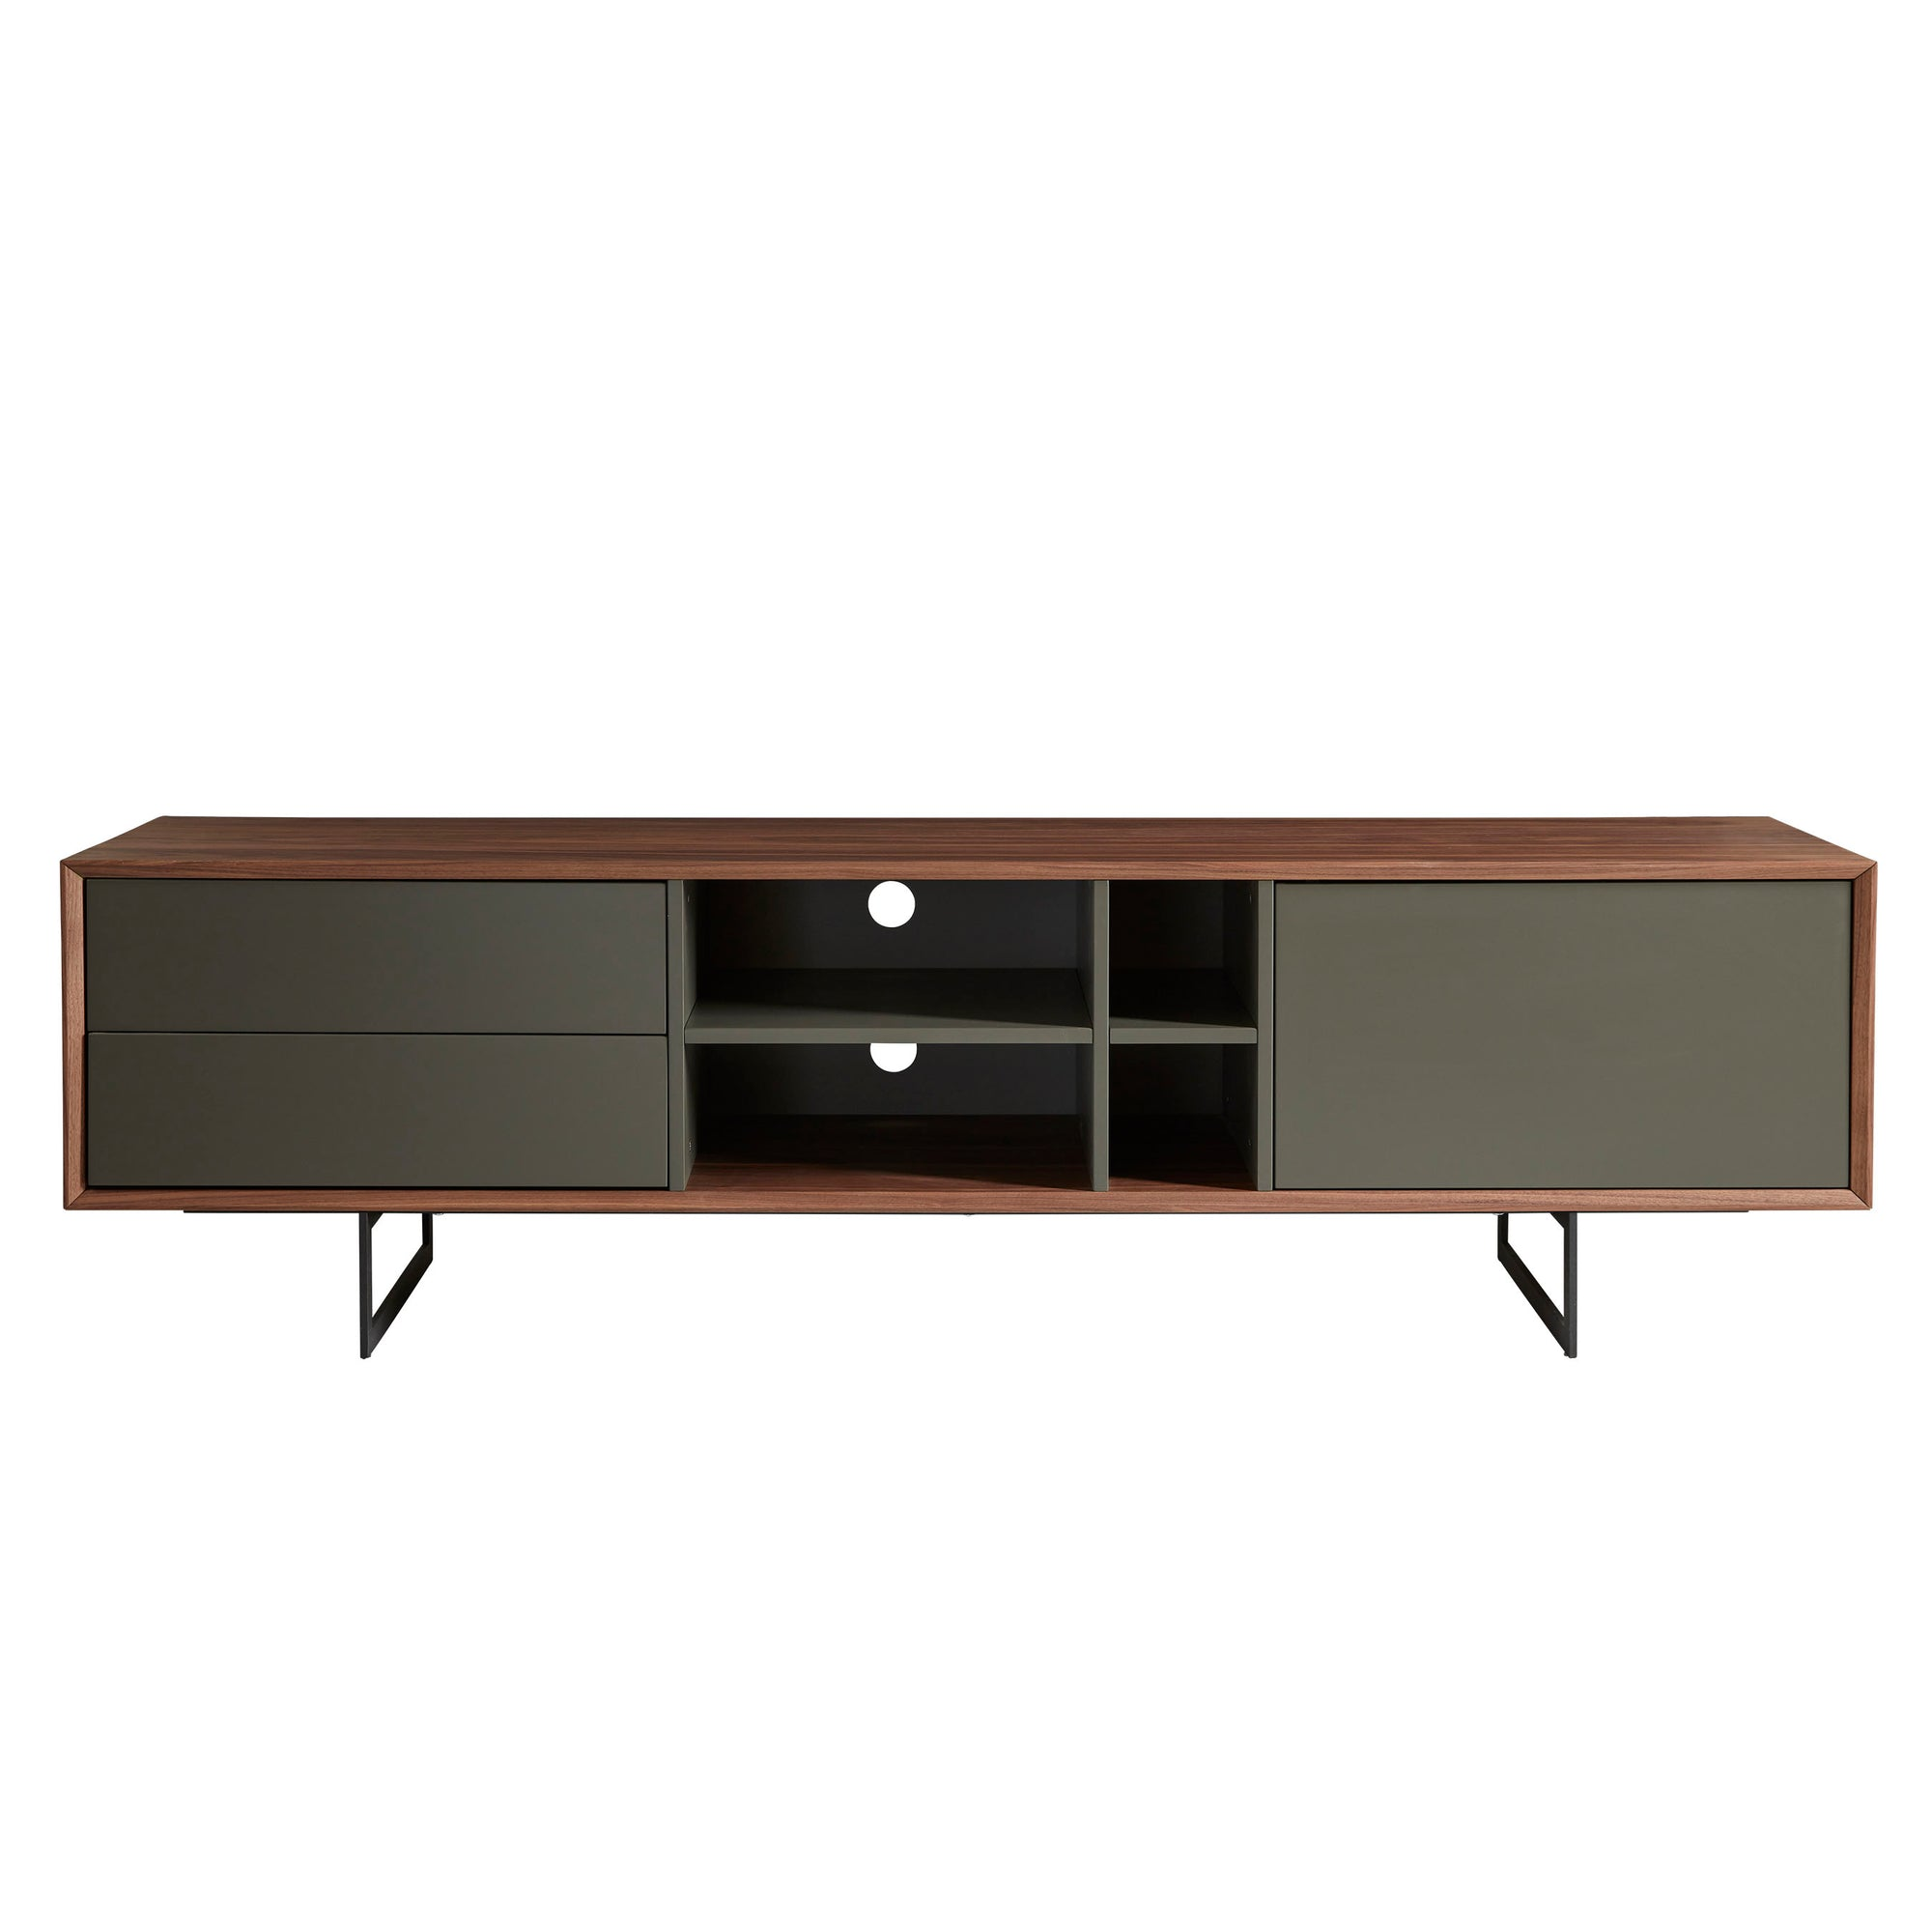 Nouveau Select-Cooper Media Stand-TV Stands-MODTEMPO